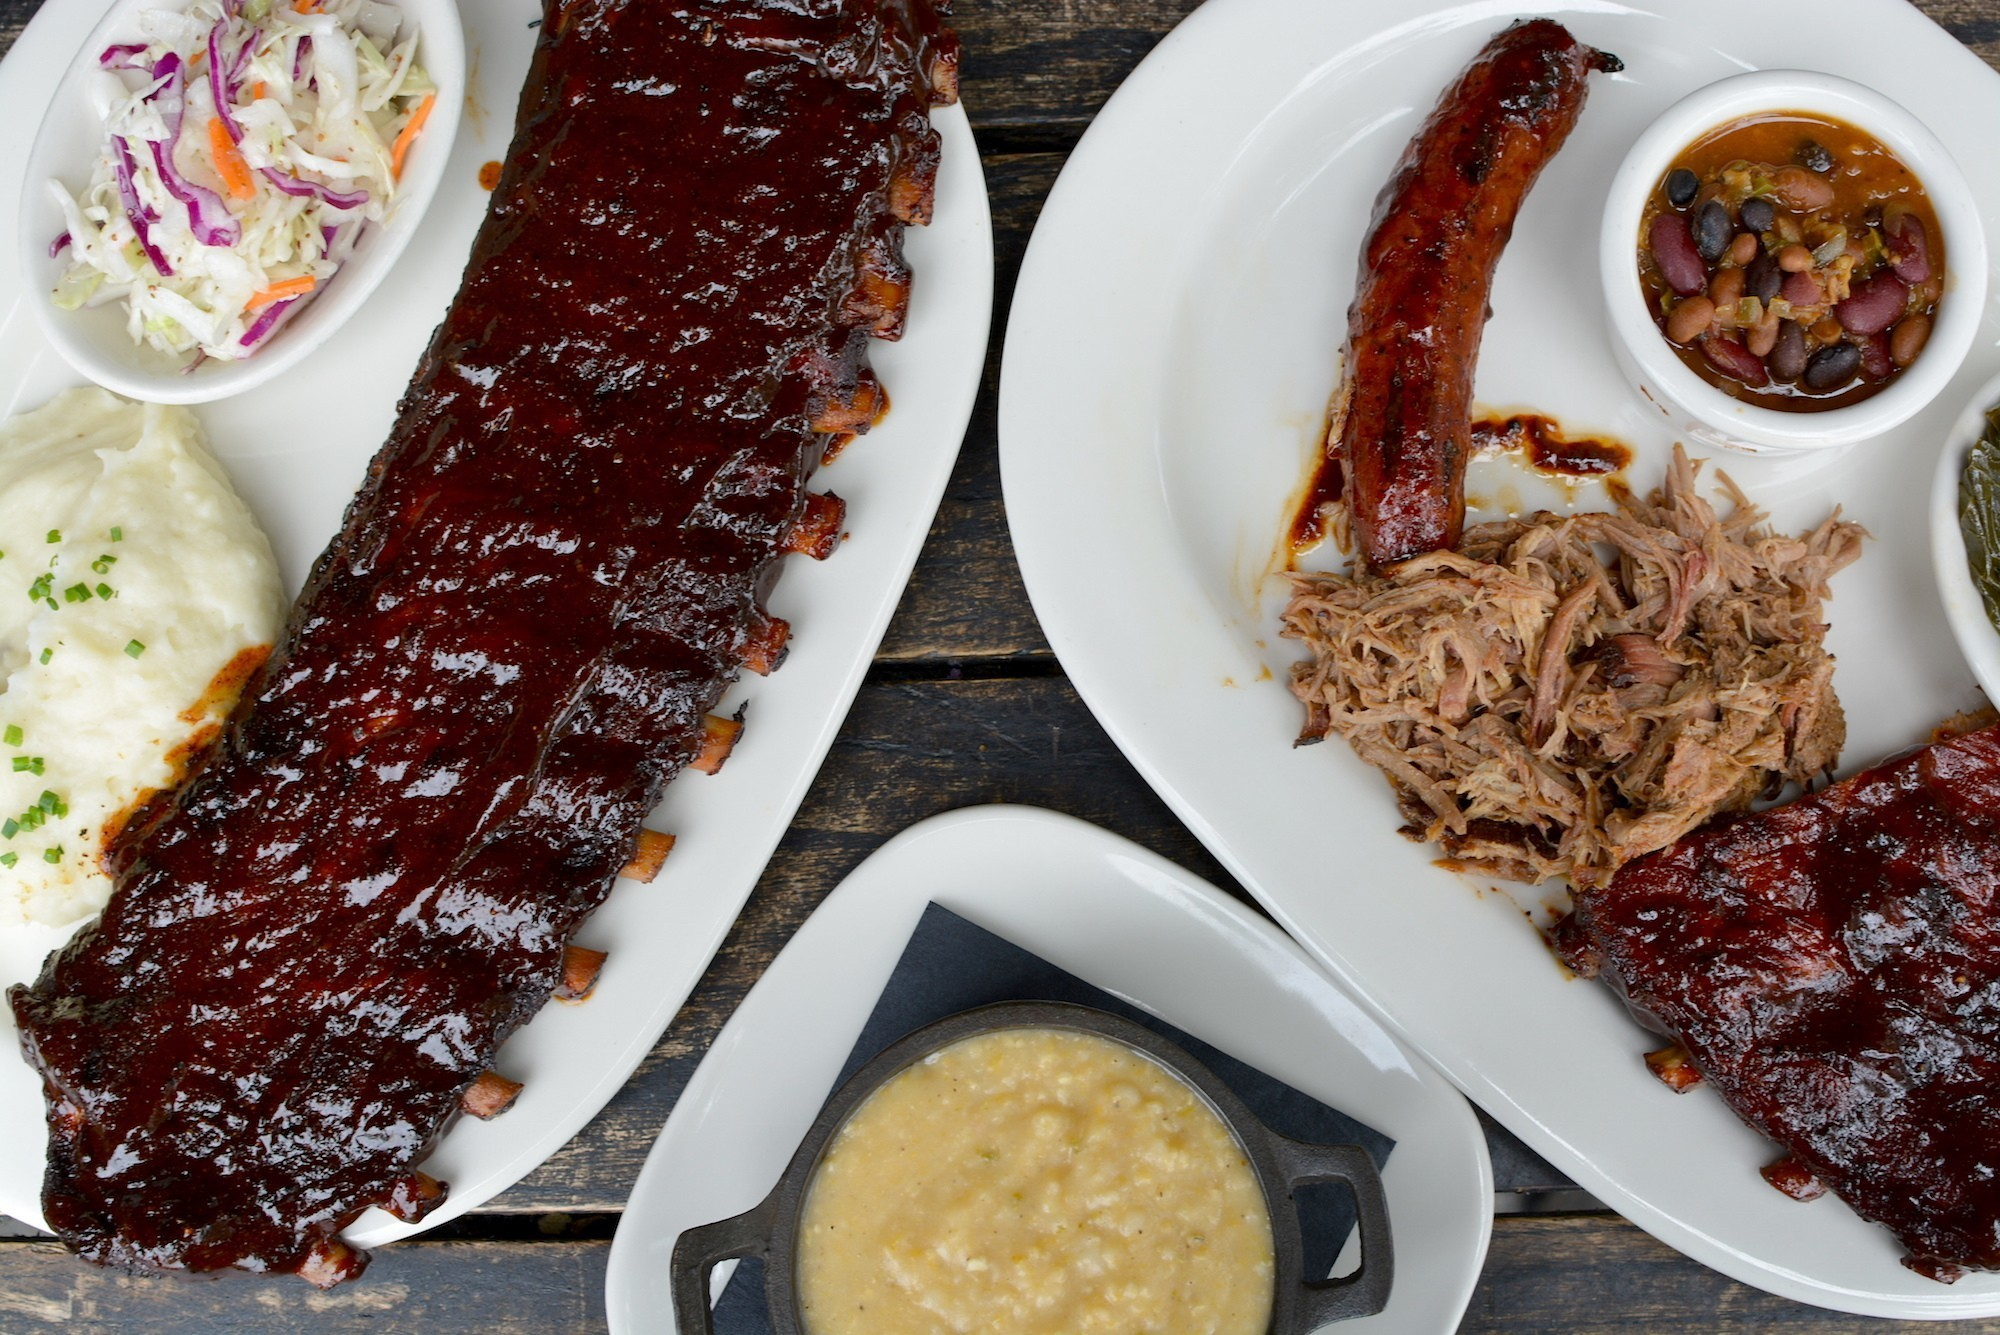 LA's Oldest Barbecue Restaurant Expands to Claremont Next